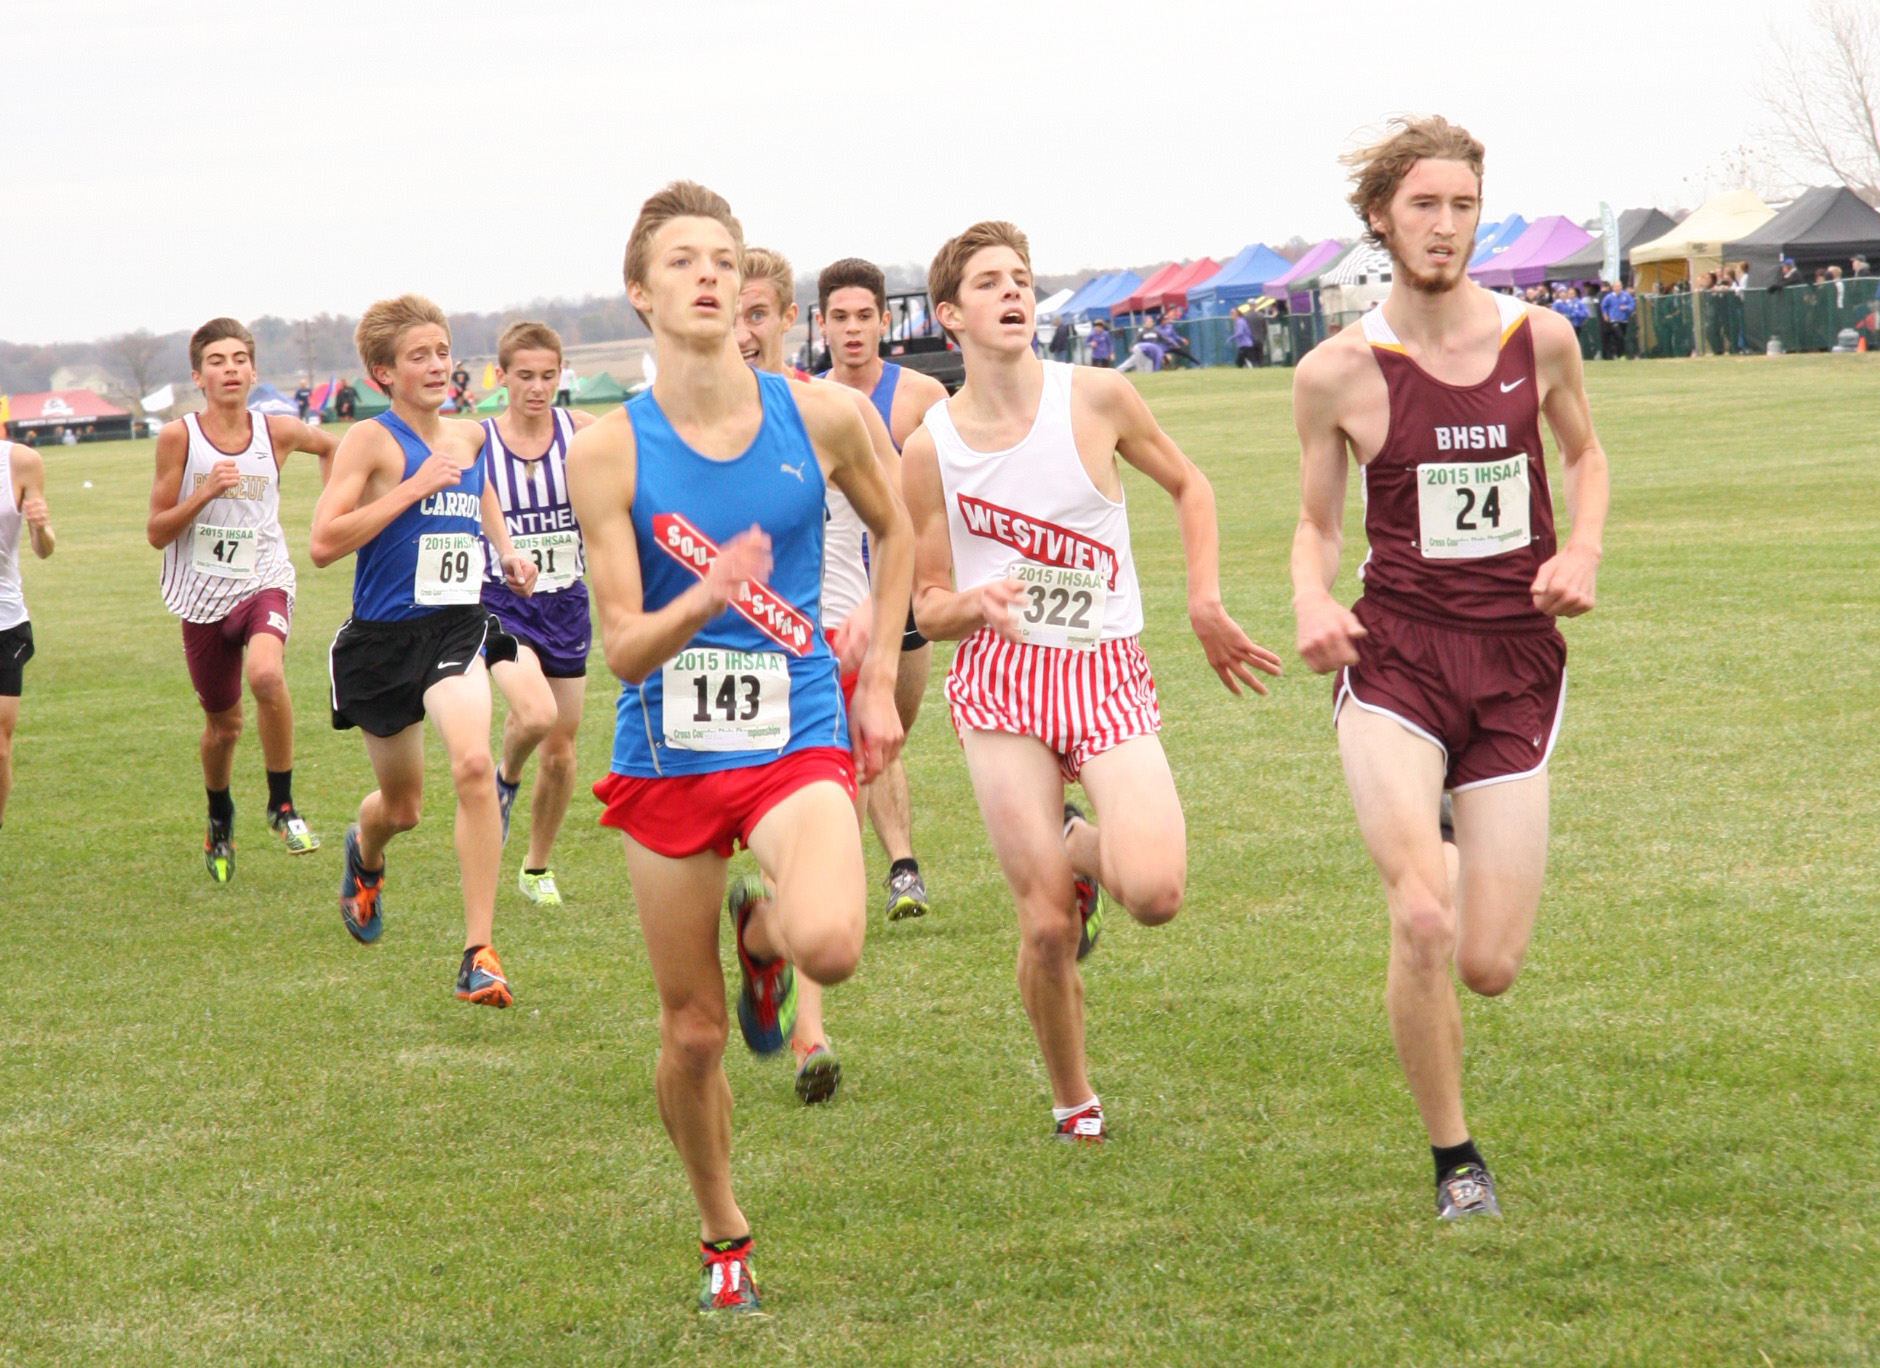 2014 illinois cross country state meet 2015